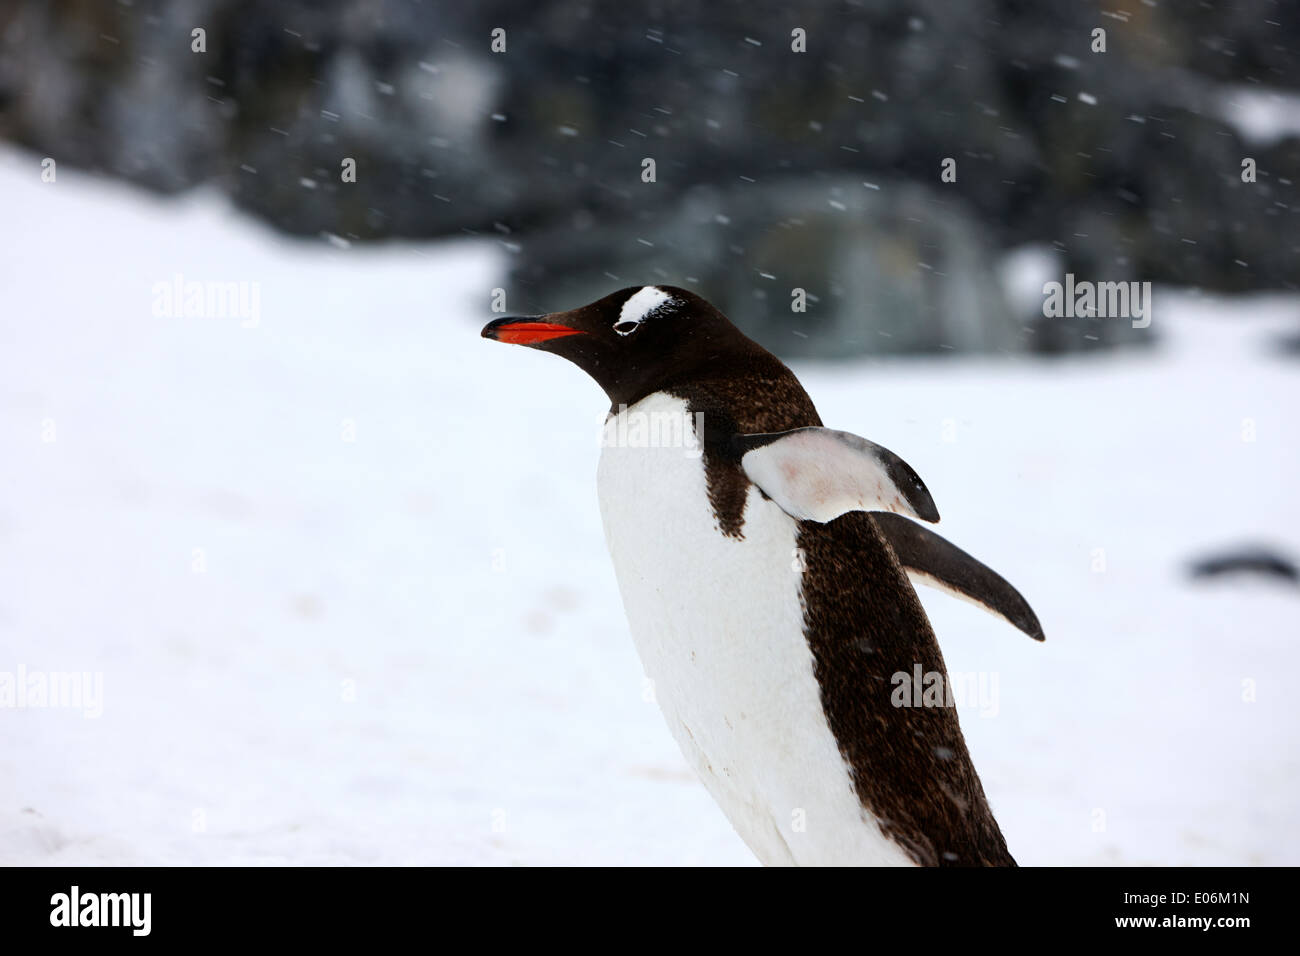 gentoo penguin cooling down with wings outstretched in snowstorm on cuverville island antarctica - Stock Image